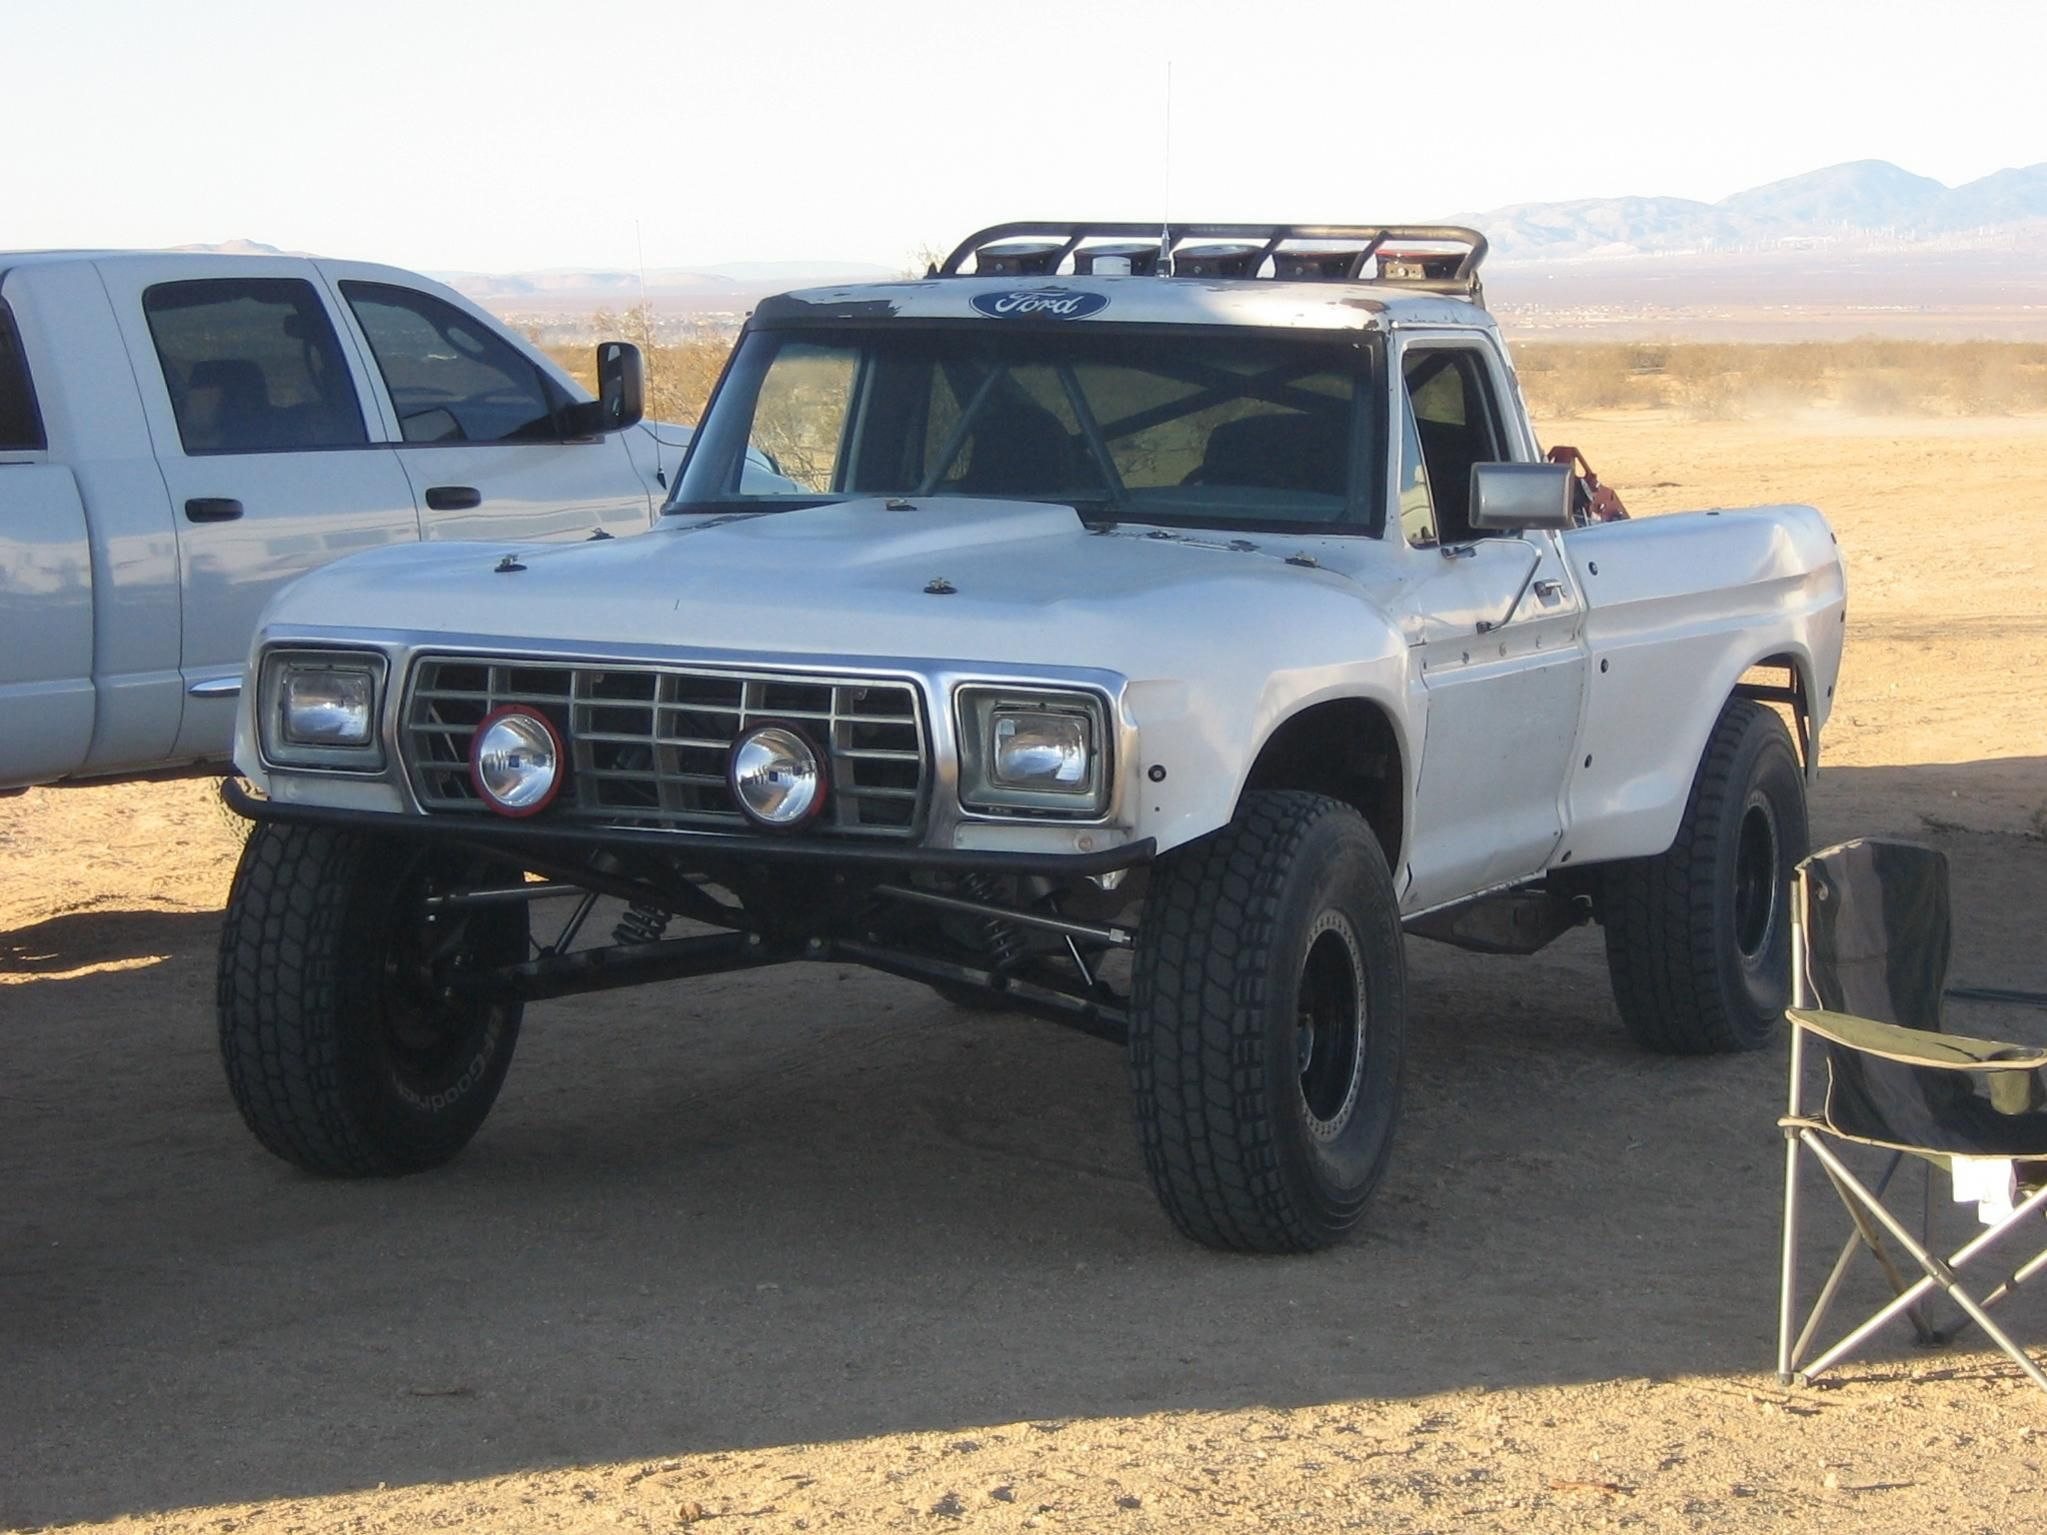 Trophy Truck For Sale >> Dream Truck But Diesel With Custom Ttb Up Front And